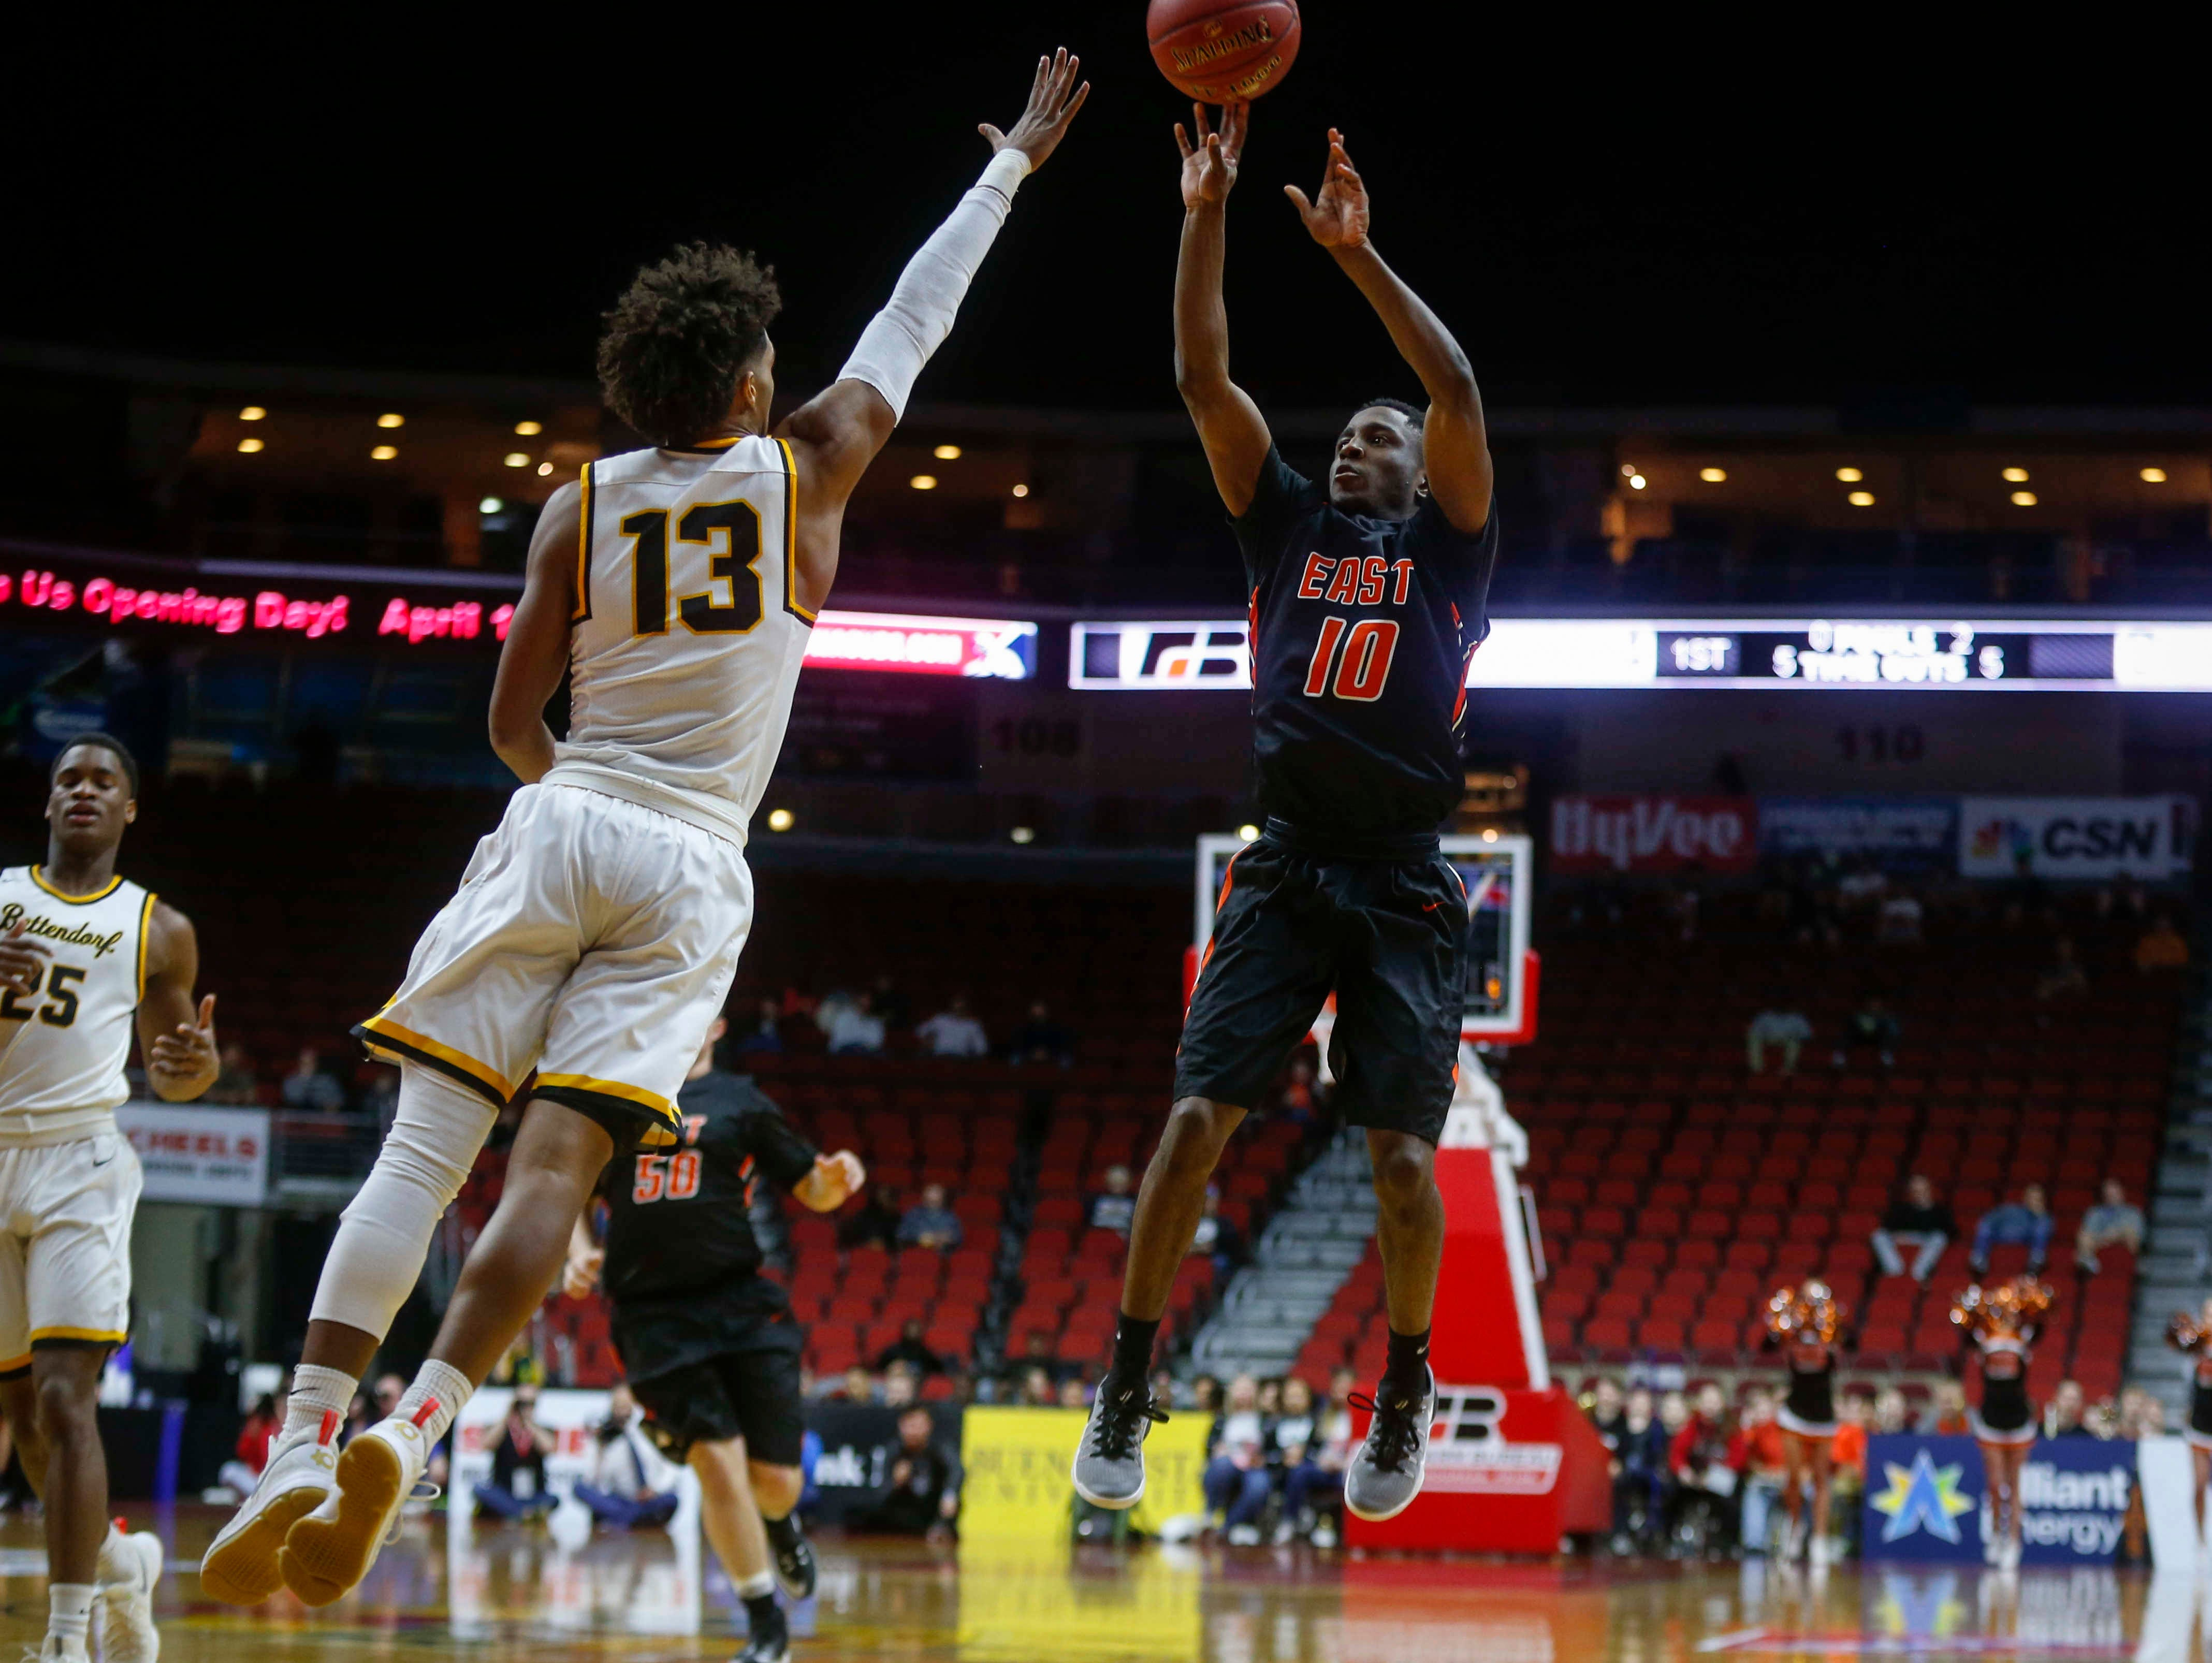 Sioux City East senior Jailen Billings hits a shot against Bettendorf during the Iowa High School state basketball tournament at Wells Fargo Arena in Des Moines on Wednesday, March 8, 2017.